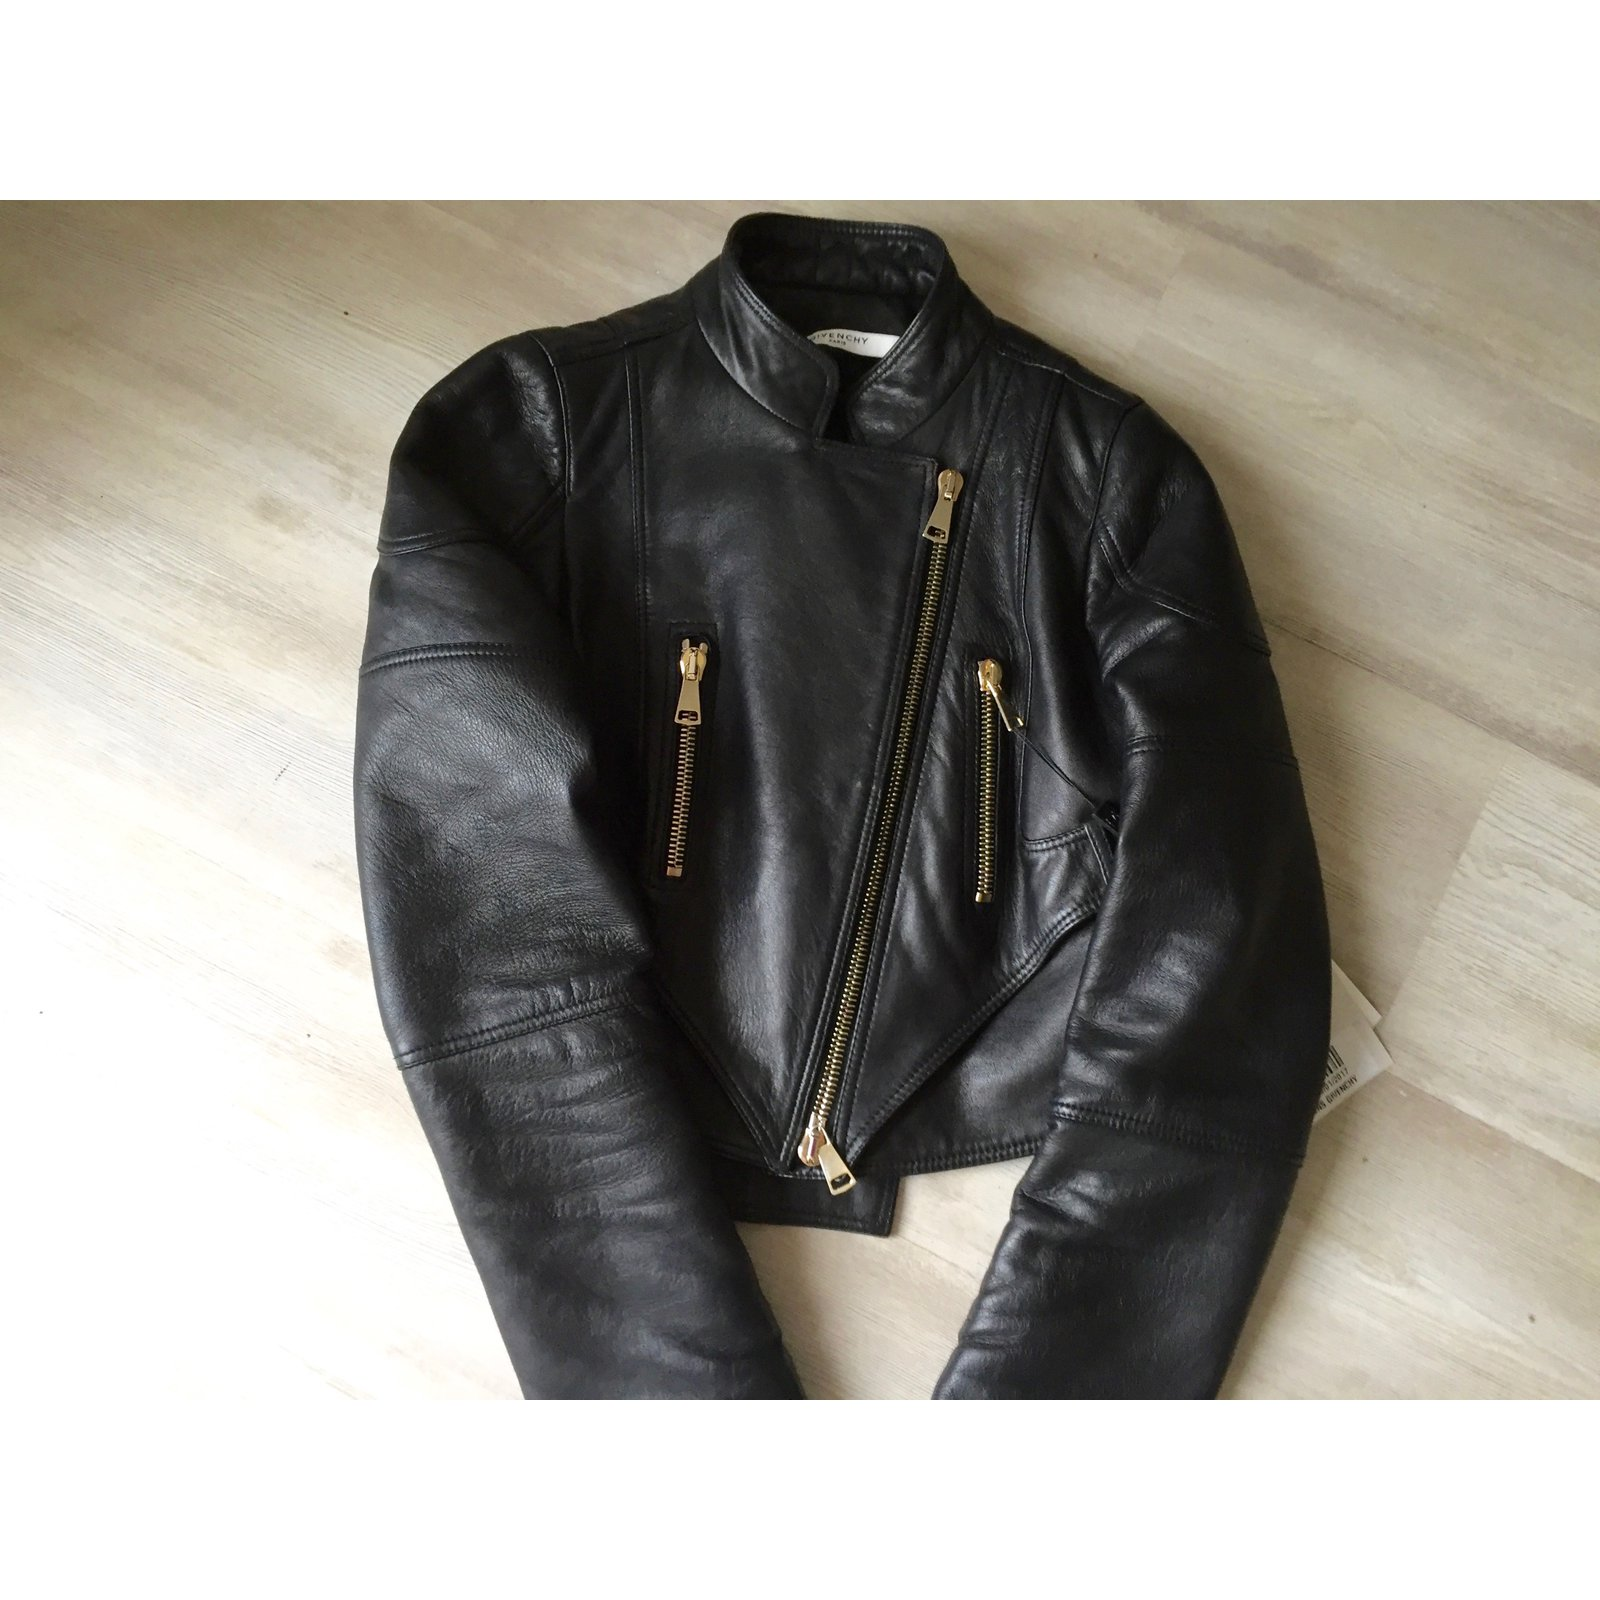 c1fca1c1d1441 Facebook · Pin This. Givenchy Jacket Jackets Leather Black ref.48898